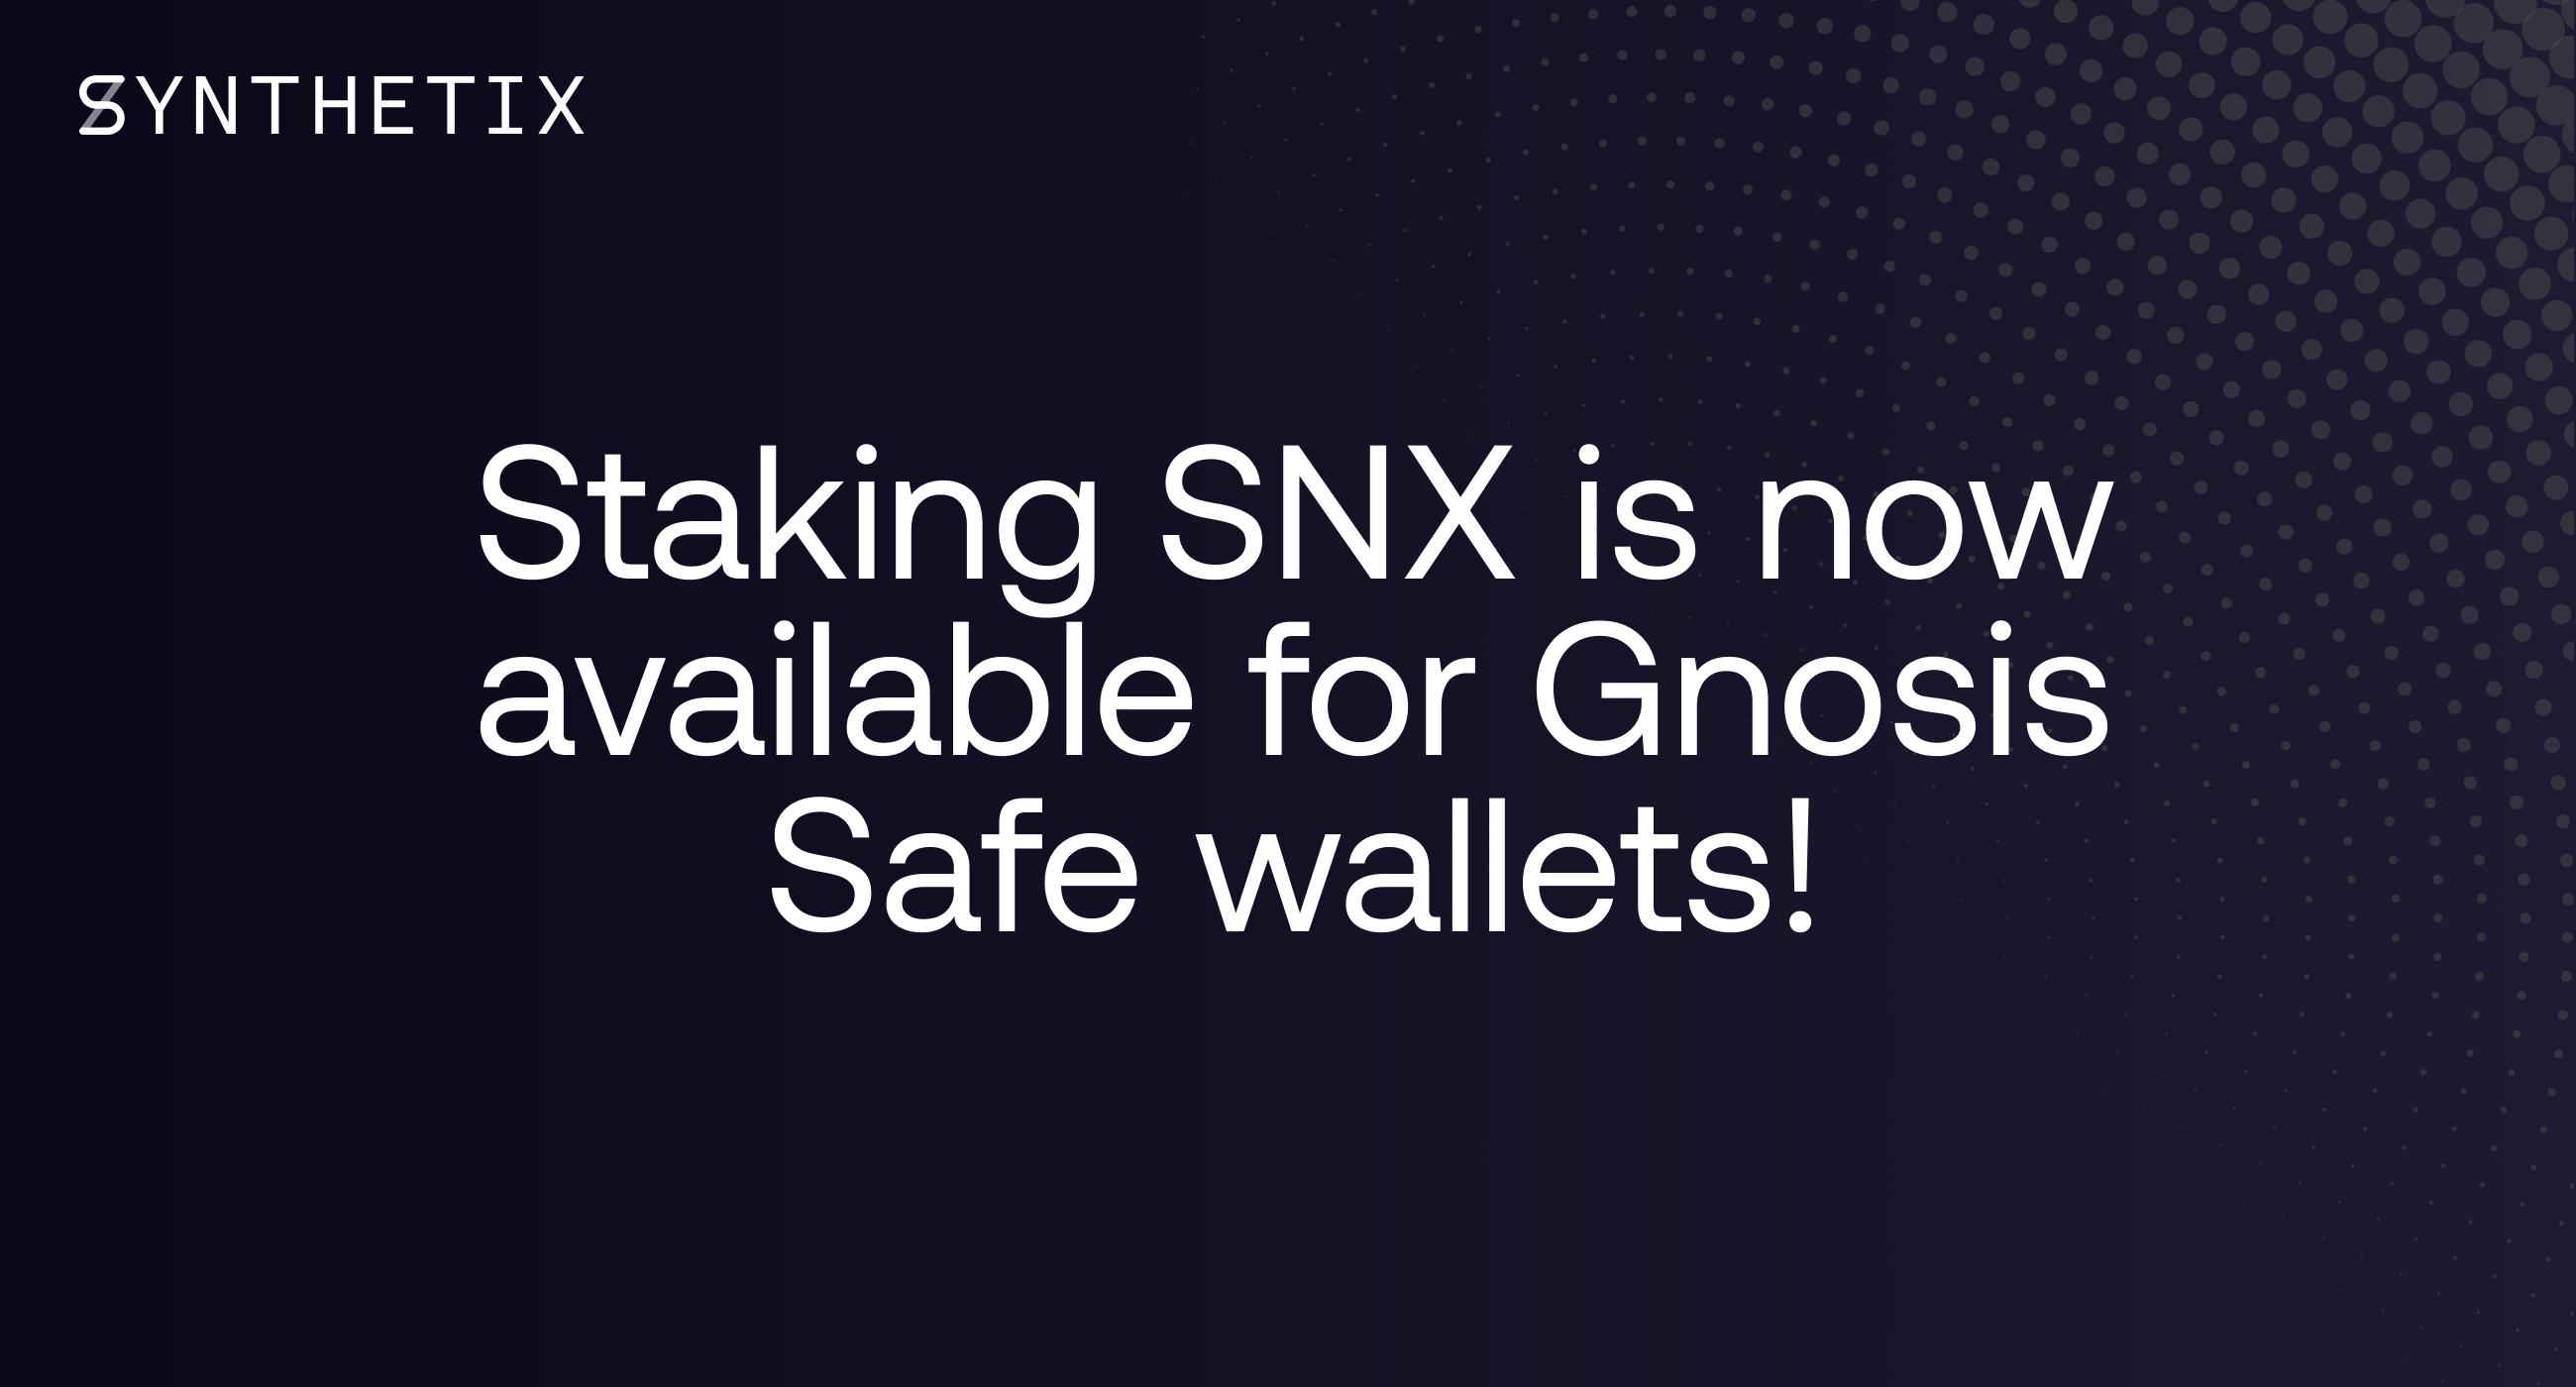 Staking SNX is now available for Gnosis Safe wallets!